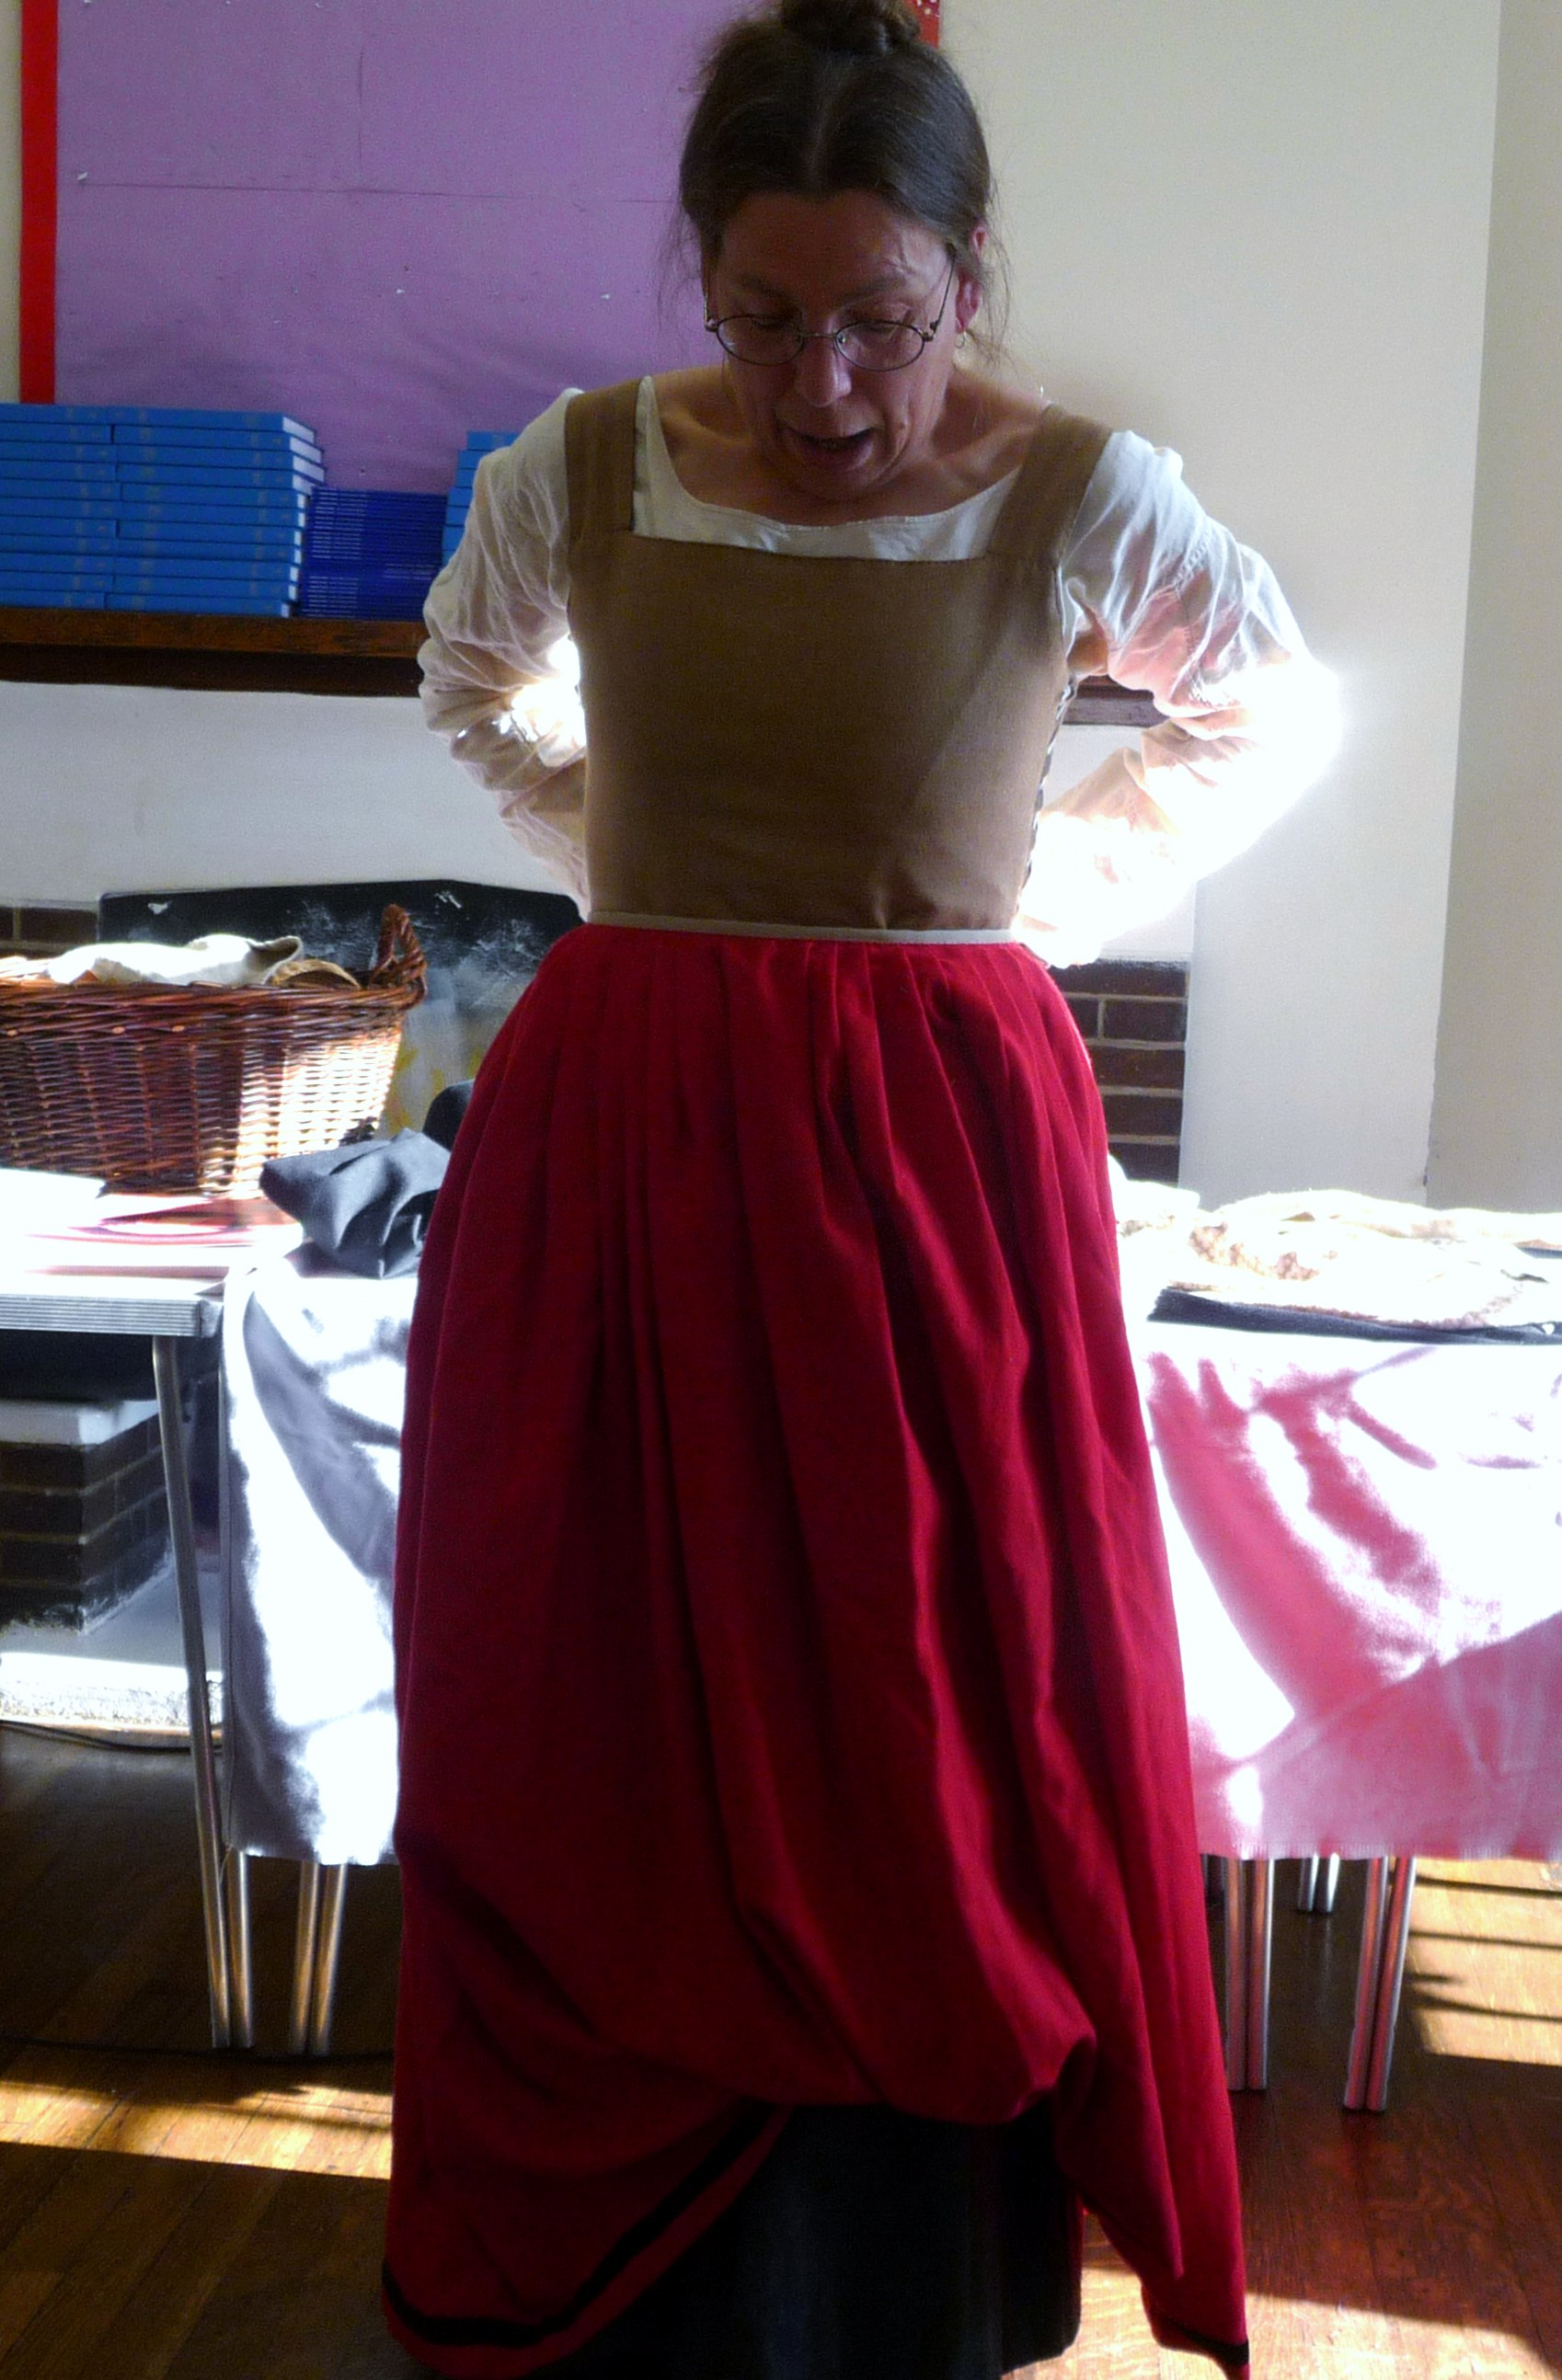 Sarah Thursfield is wearing a red half kirtle